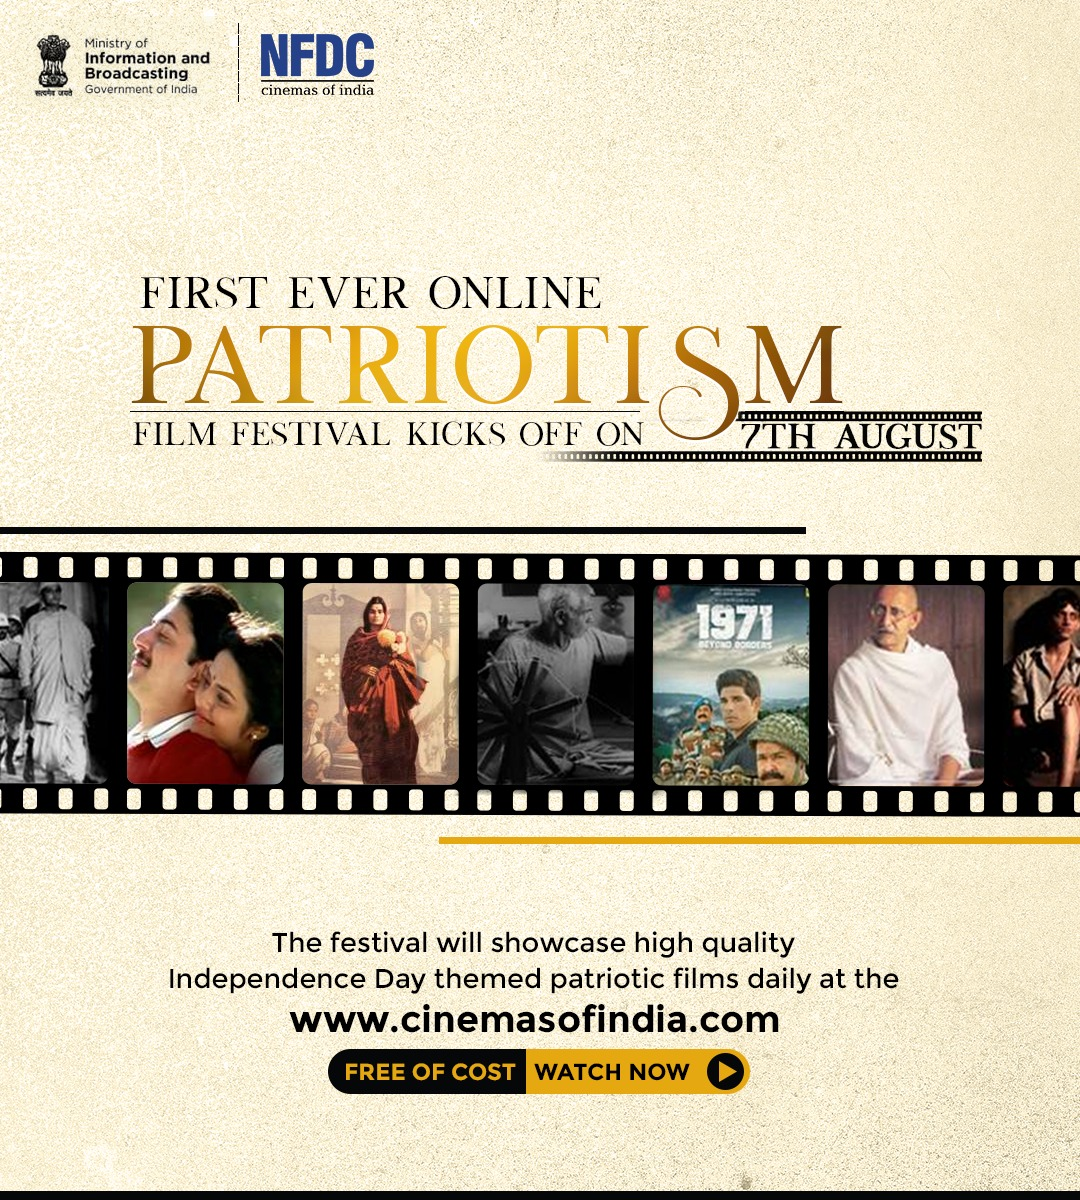 Celebrate 73 years of independence with the online #PatrioticFilmFestival organized by @MIB_India from 7th to 21st August 2020. The festival showcases Indian history that marks the bravery of our freedom fighters.  Visit https://t.co/it73UnCPPE to watch free of cost. https://t.co/gqYfQeeLV5